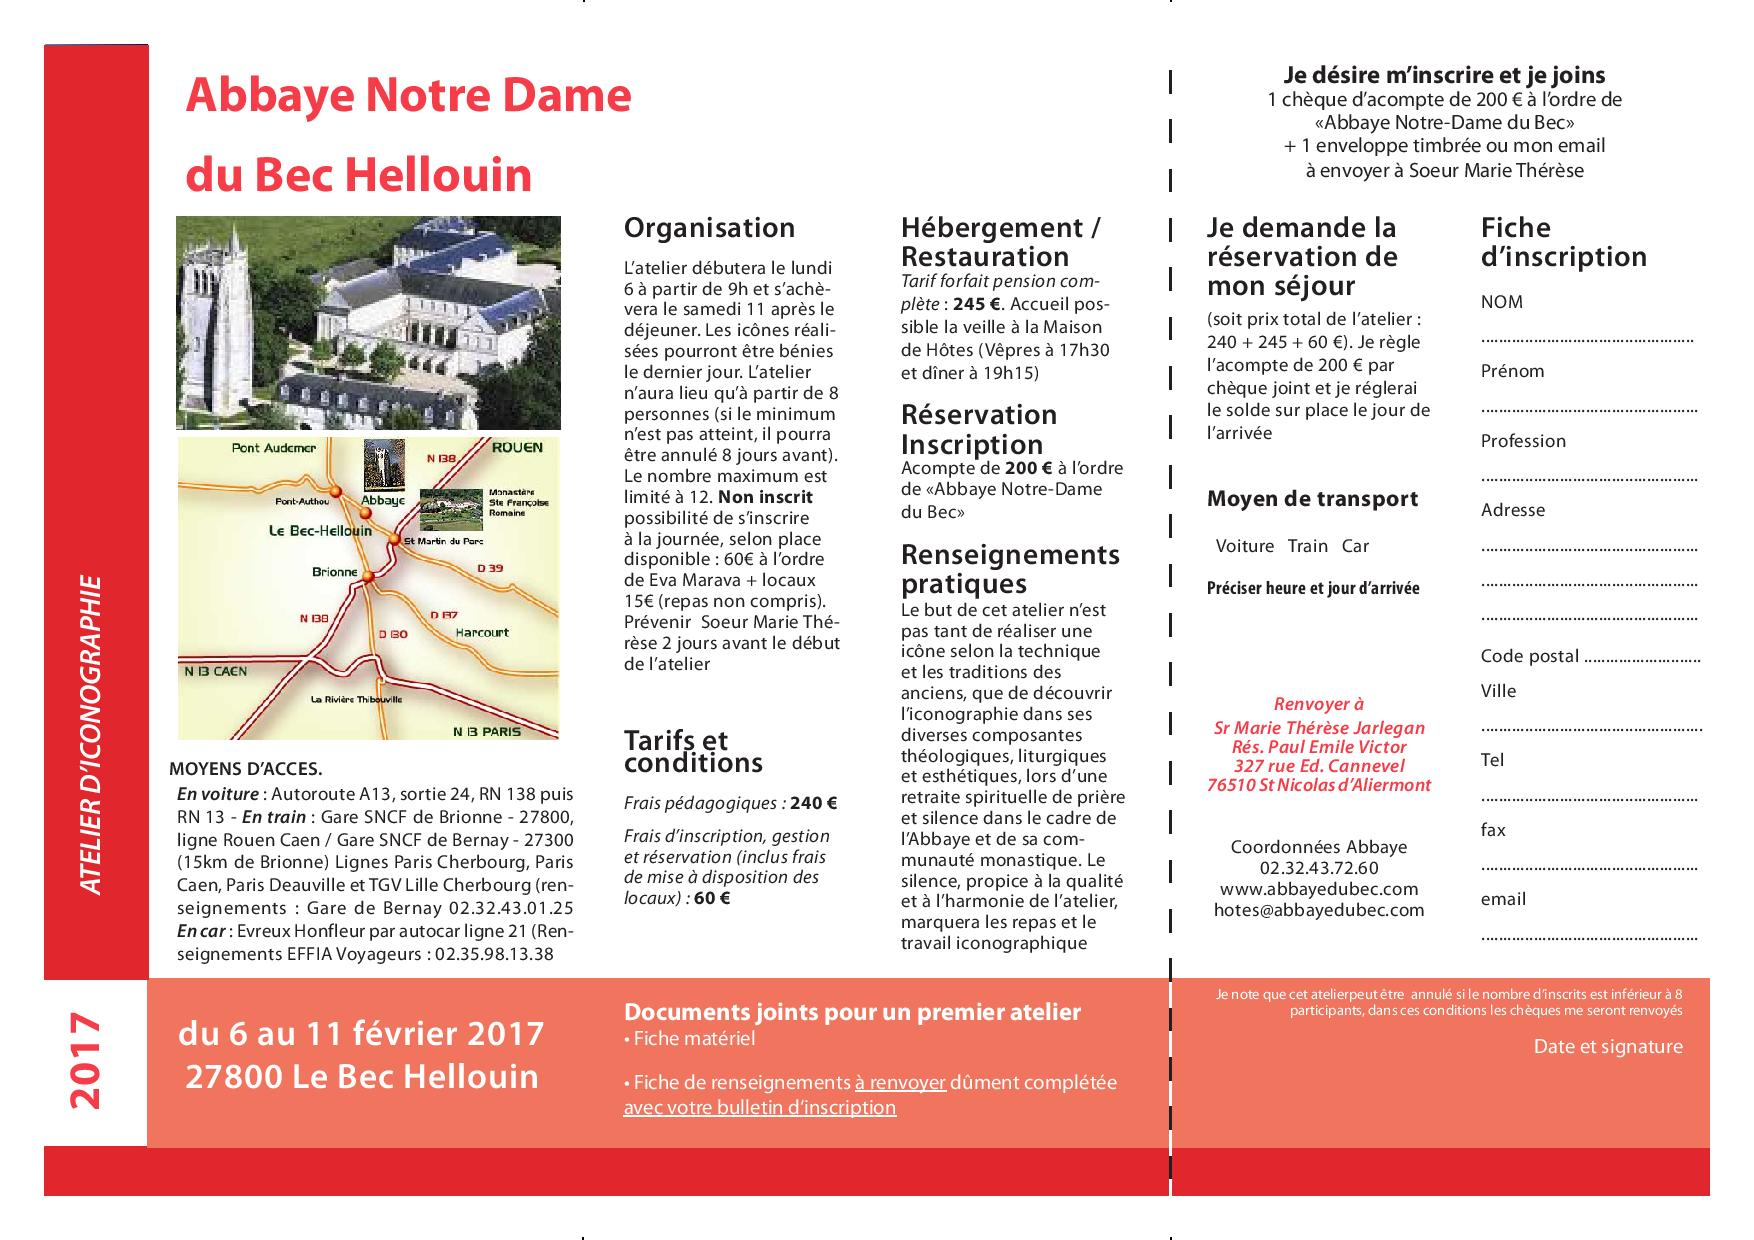 brochure-2017-bec-hellouin-5b310-5d-page-002